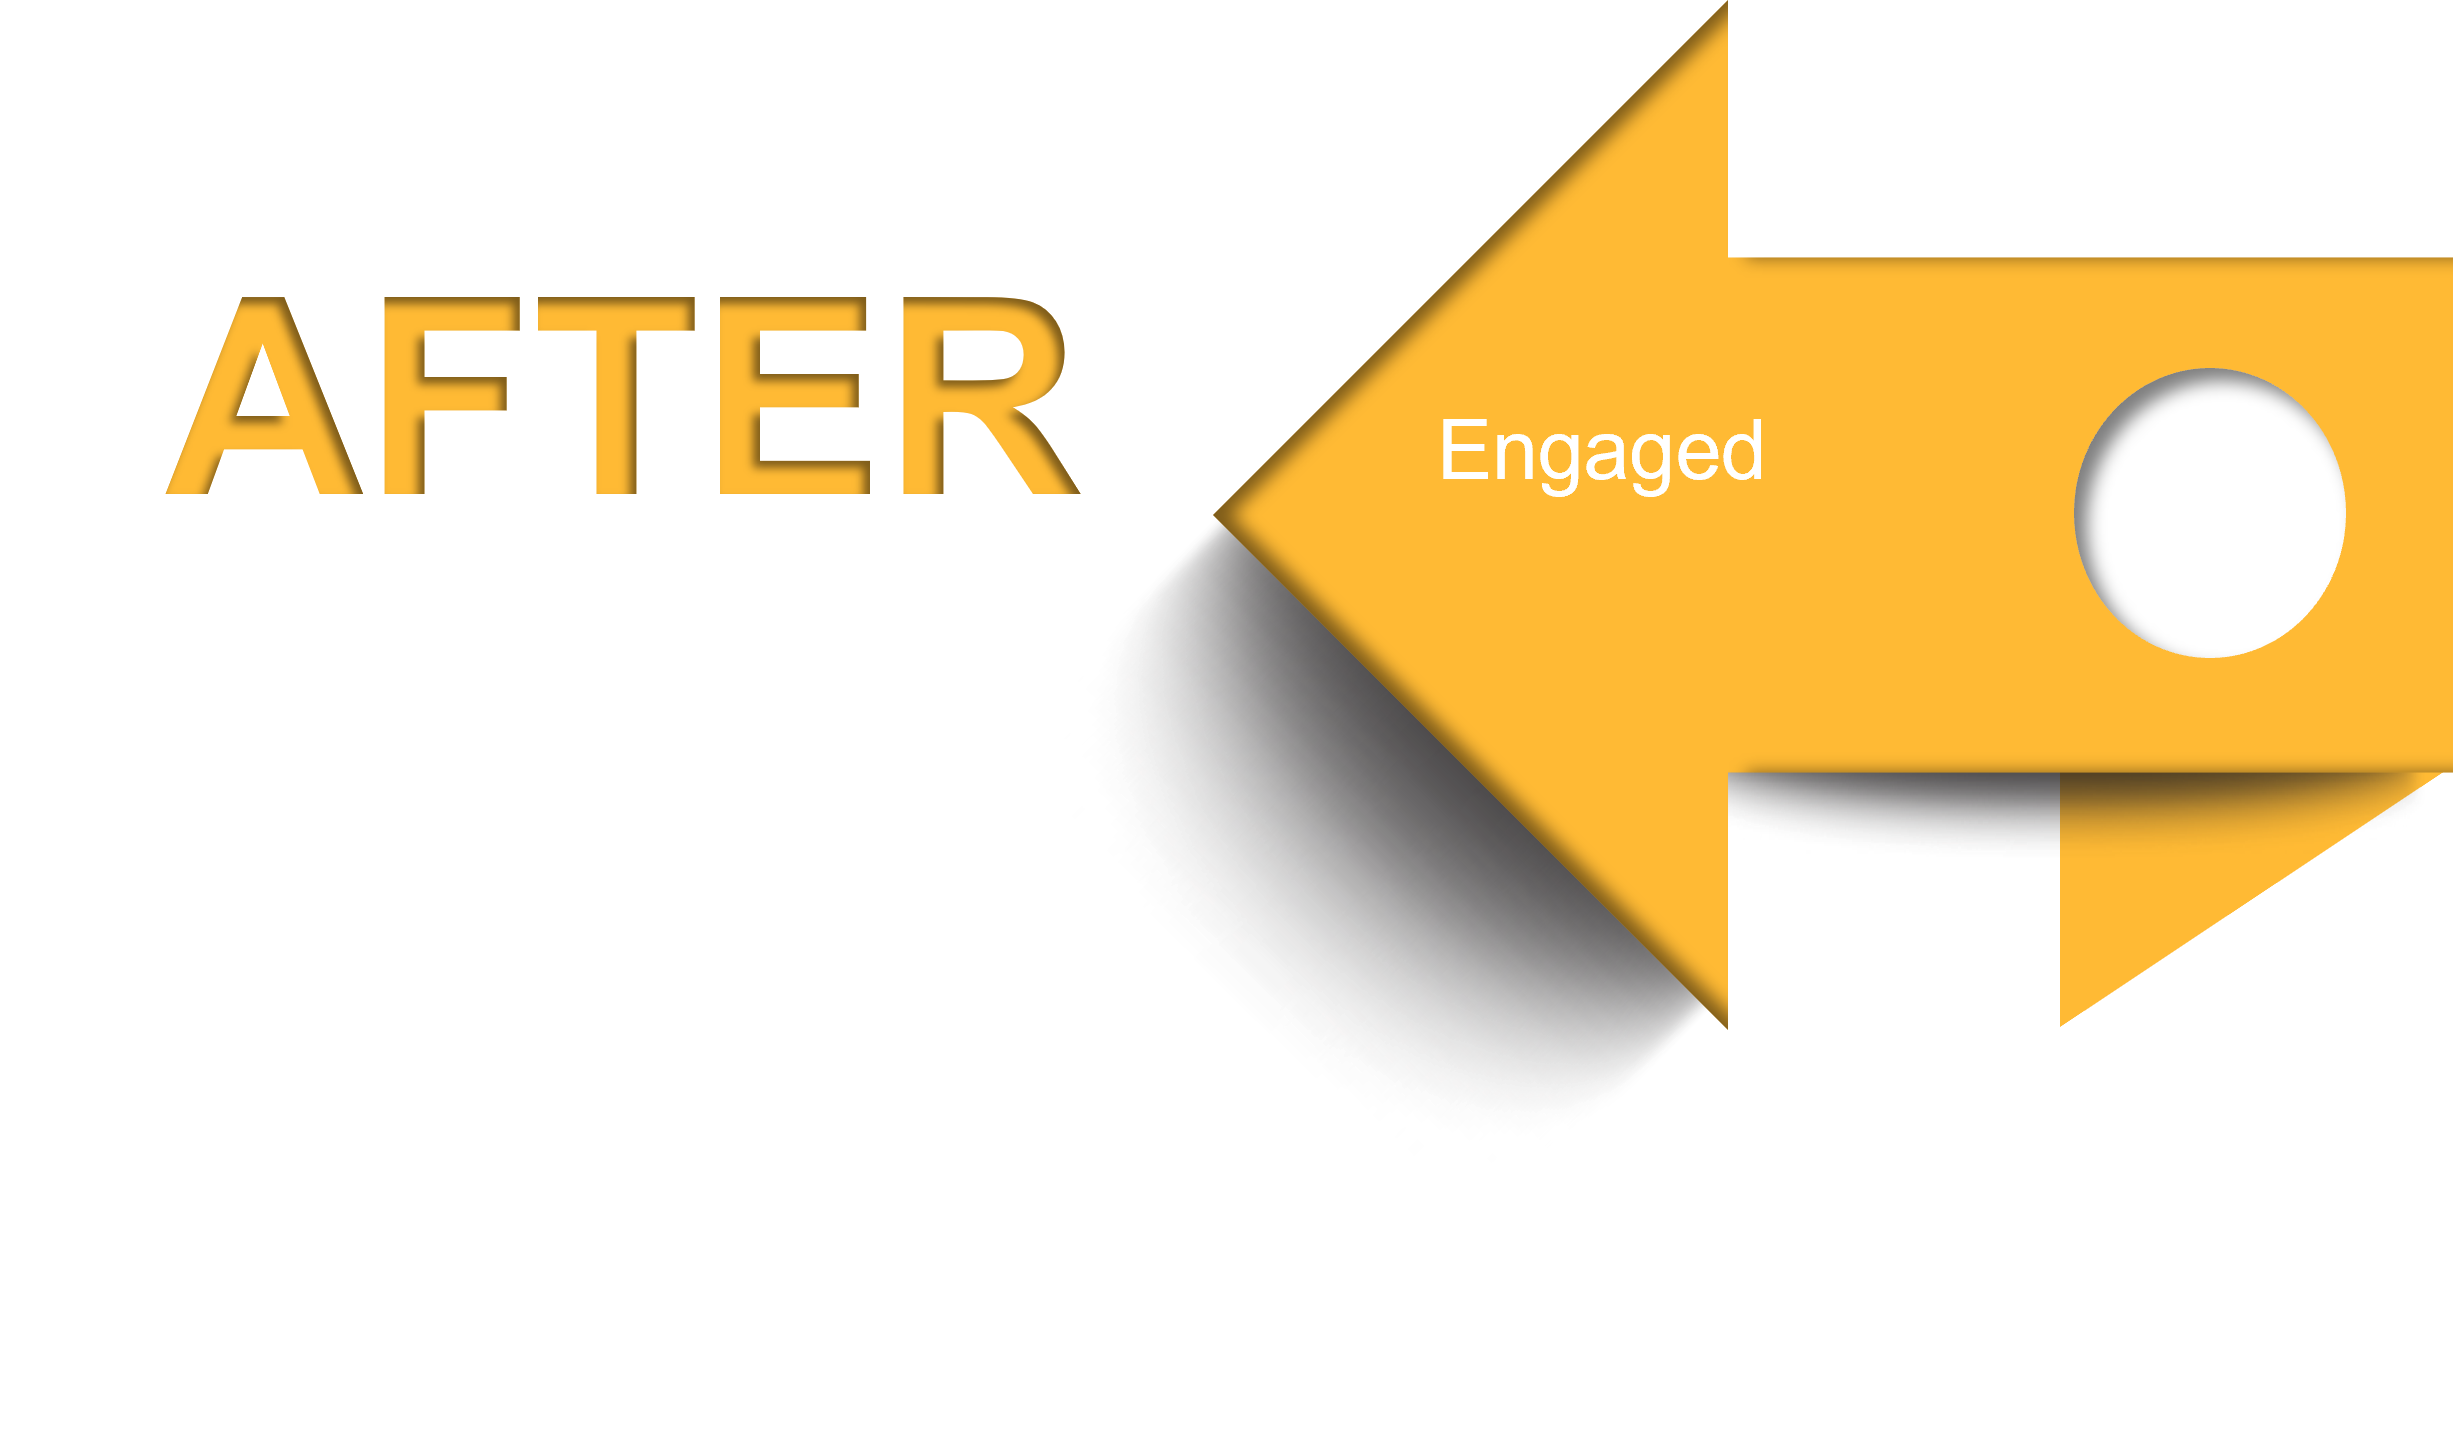 After-engaged